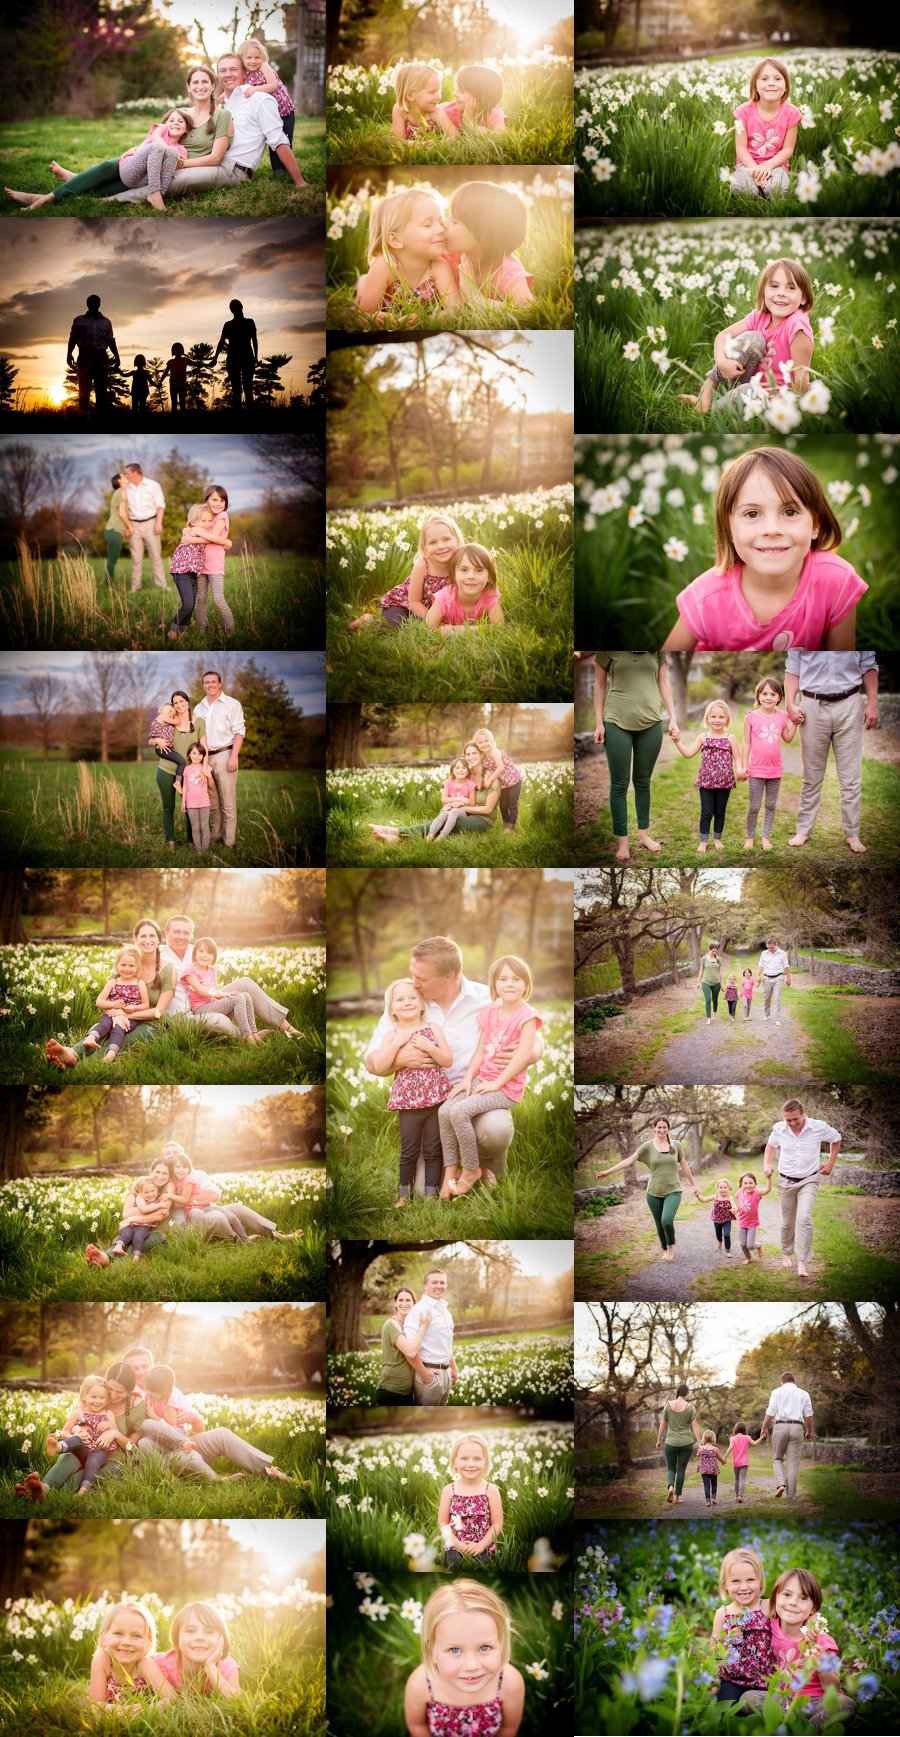 Shenandoah Valley Family Photography. Stephens City VA Family Photographer. Family of Four Poses. Outdoor spring family portraits in flowers. www.kensiem.com | Northern Virginia Photographer